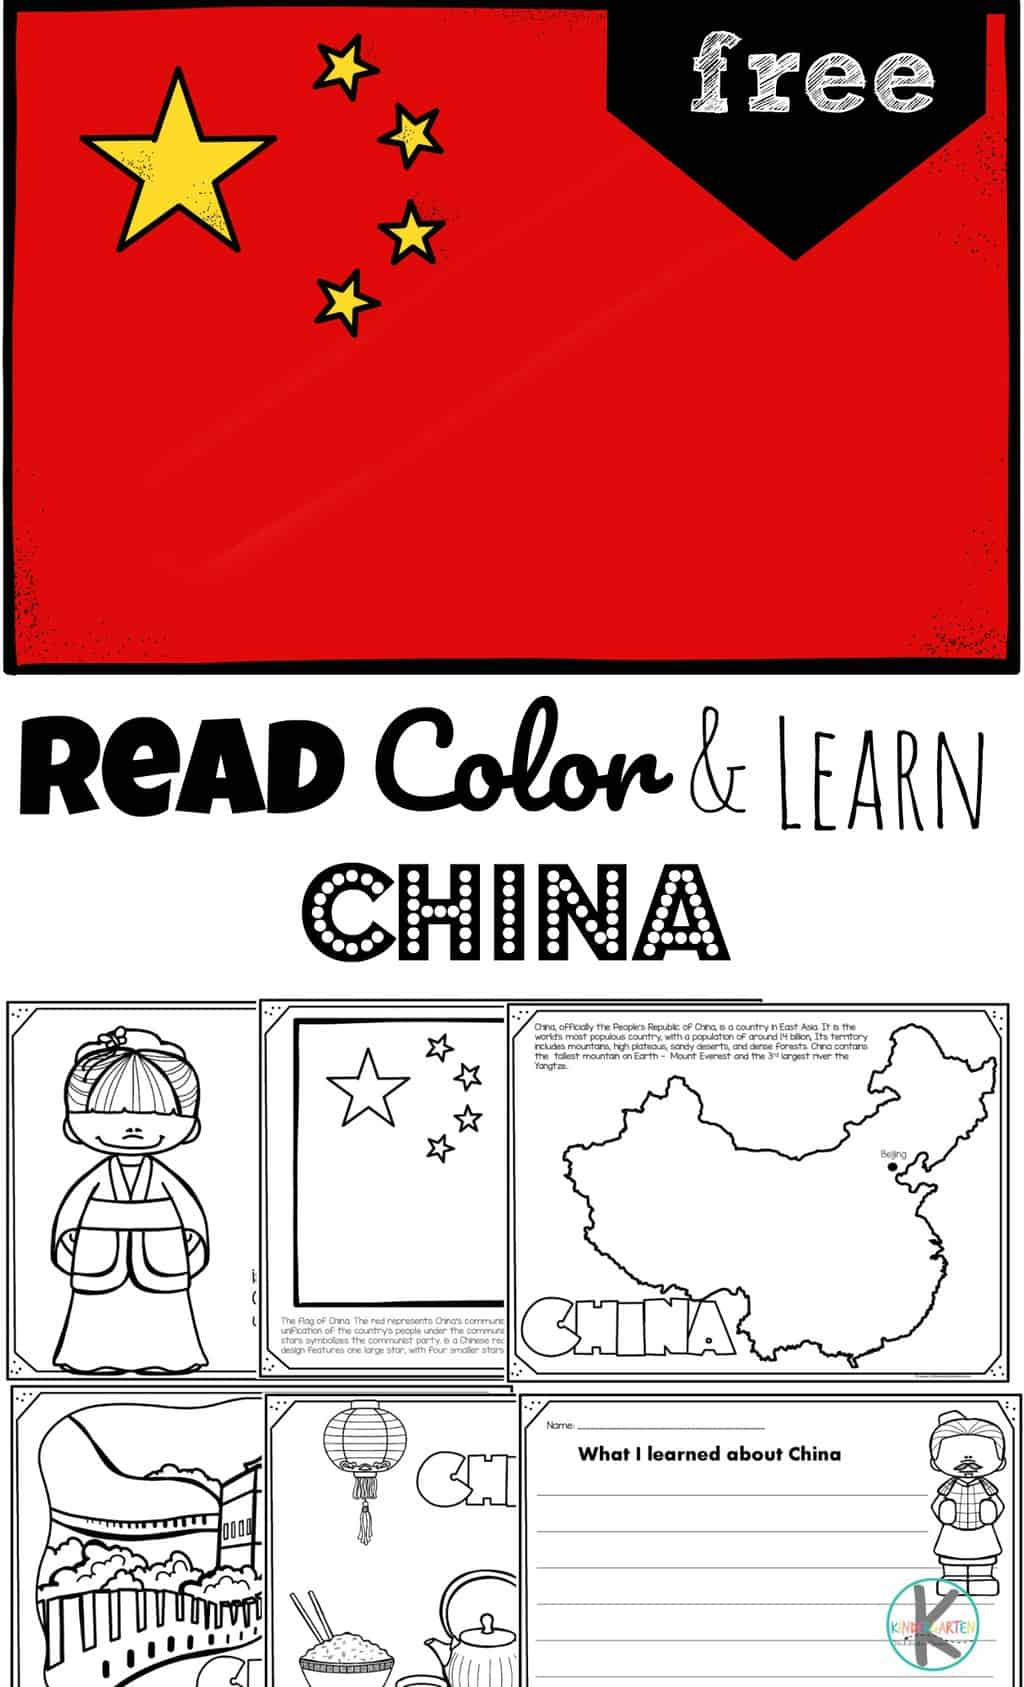 Read Color And Learn About China